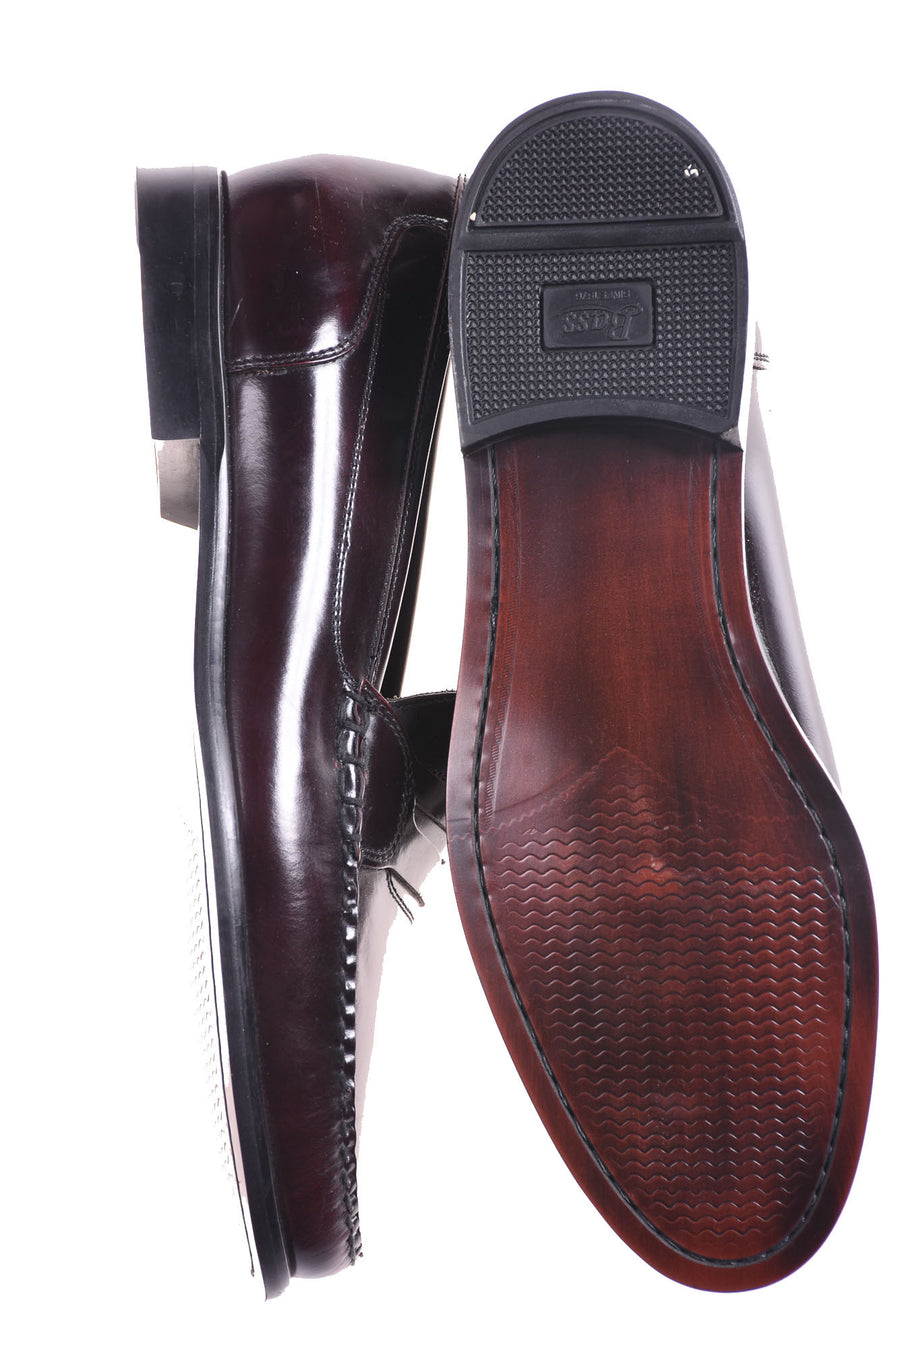 Men's Dress Shoes By Bass